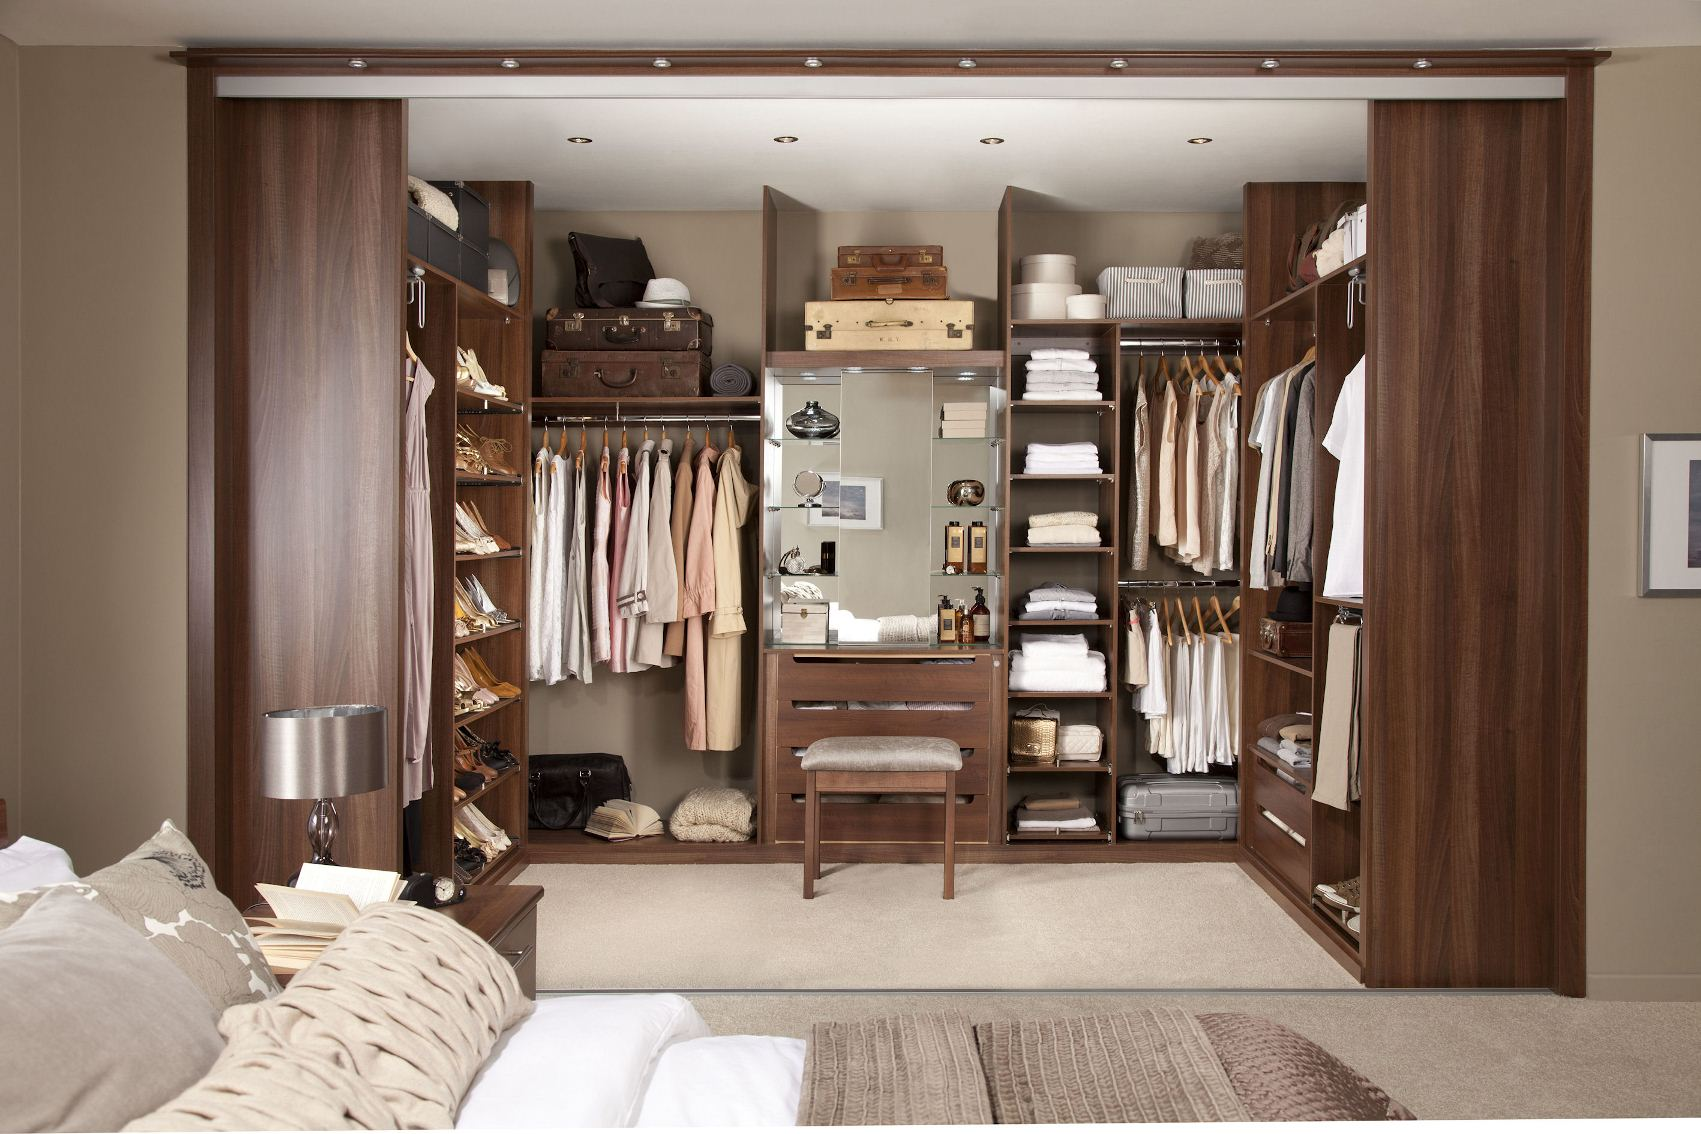 Small Walk in Closet Design Ideas | Closet Orginizers | Diy Walk in Closet